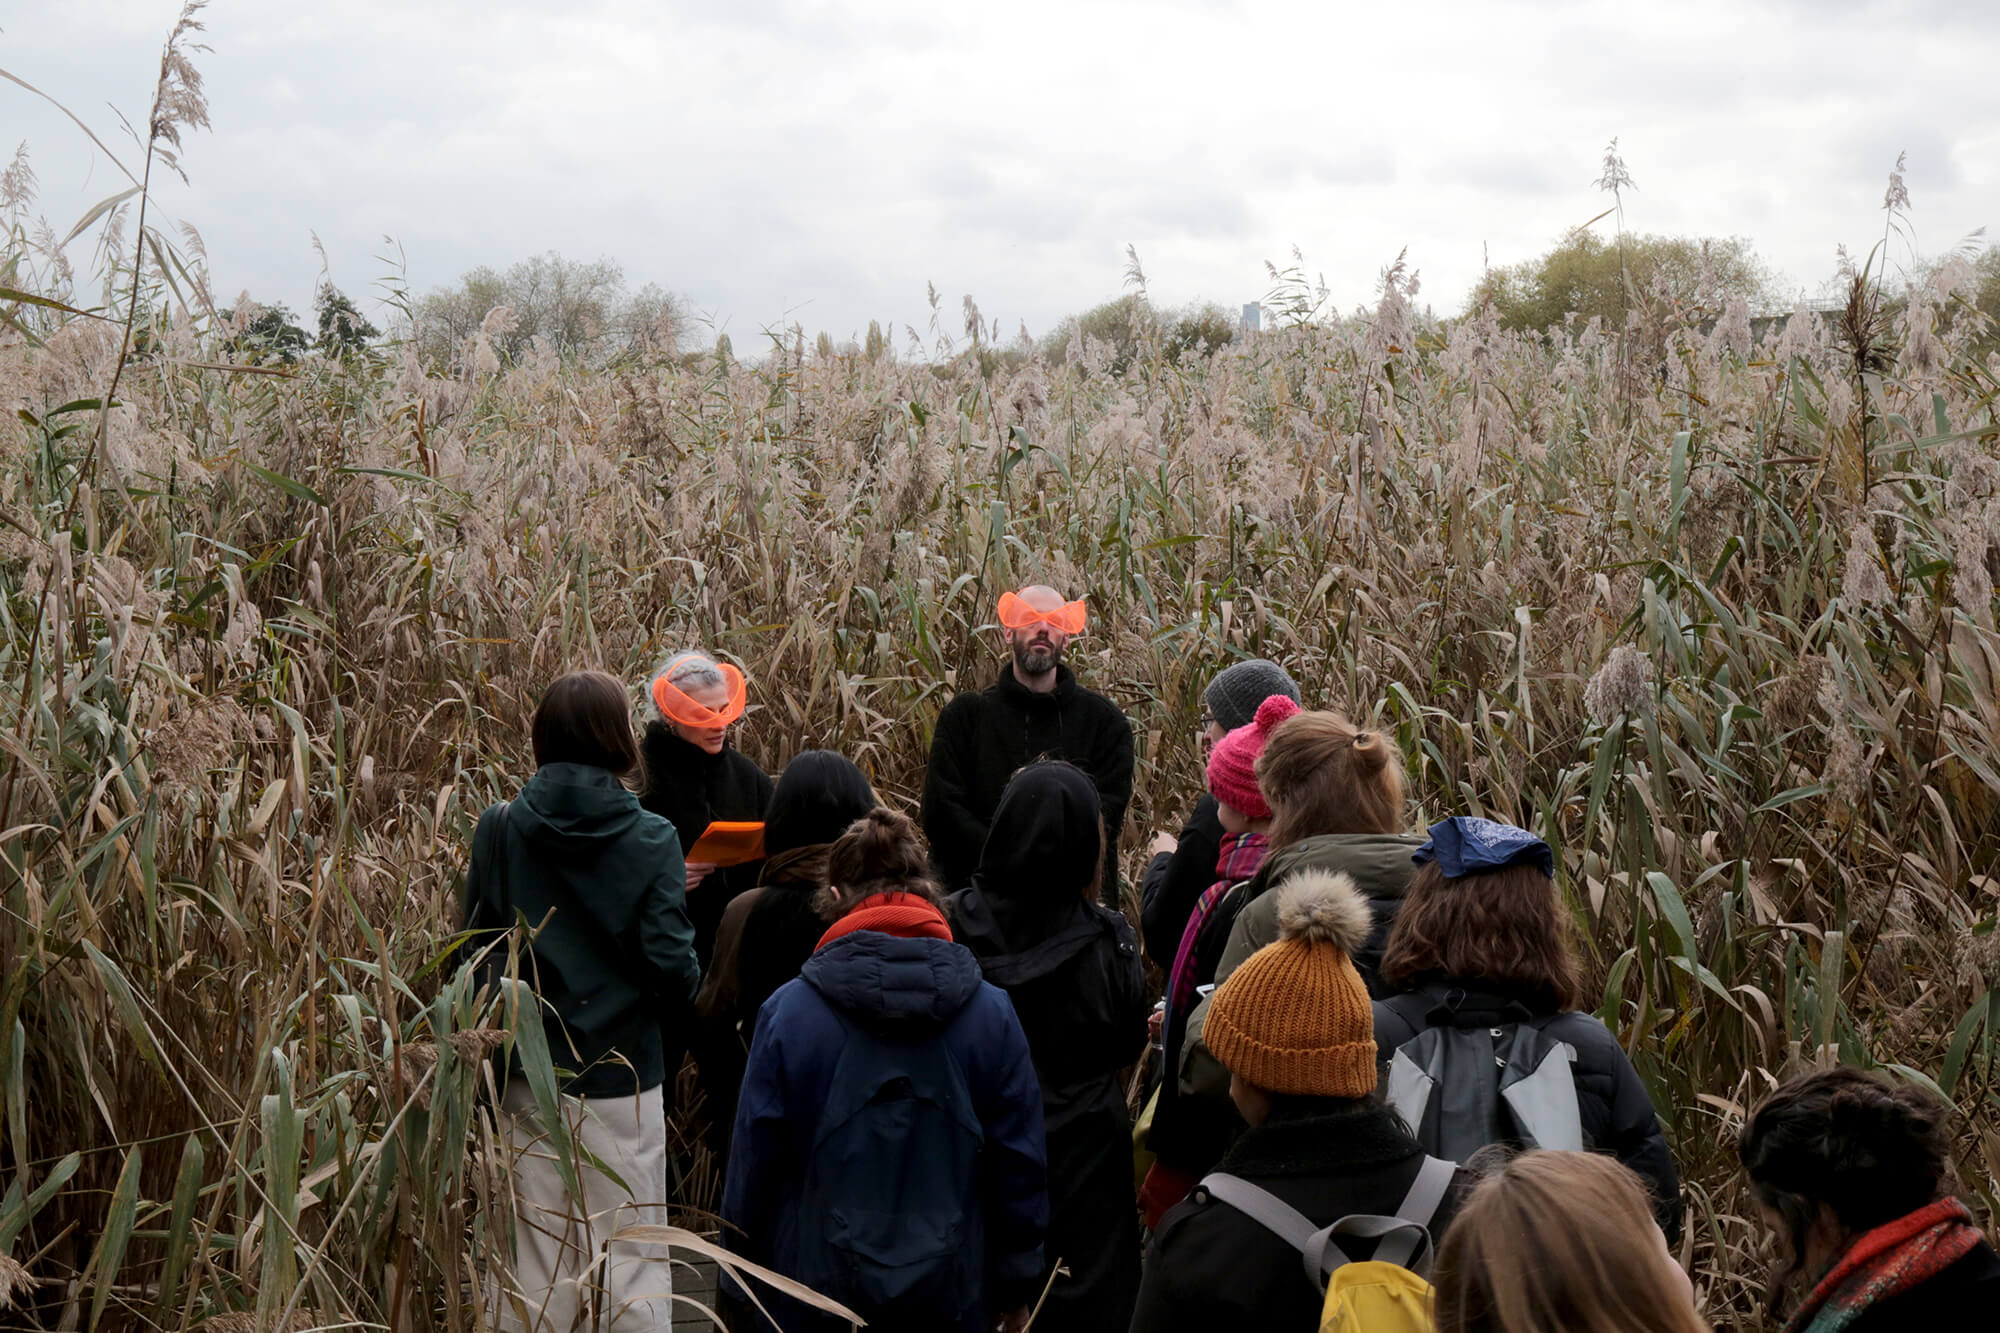 artists perform to an audience group in the middle of a reed bed